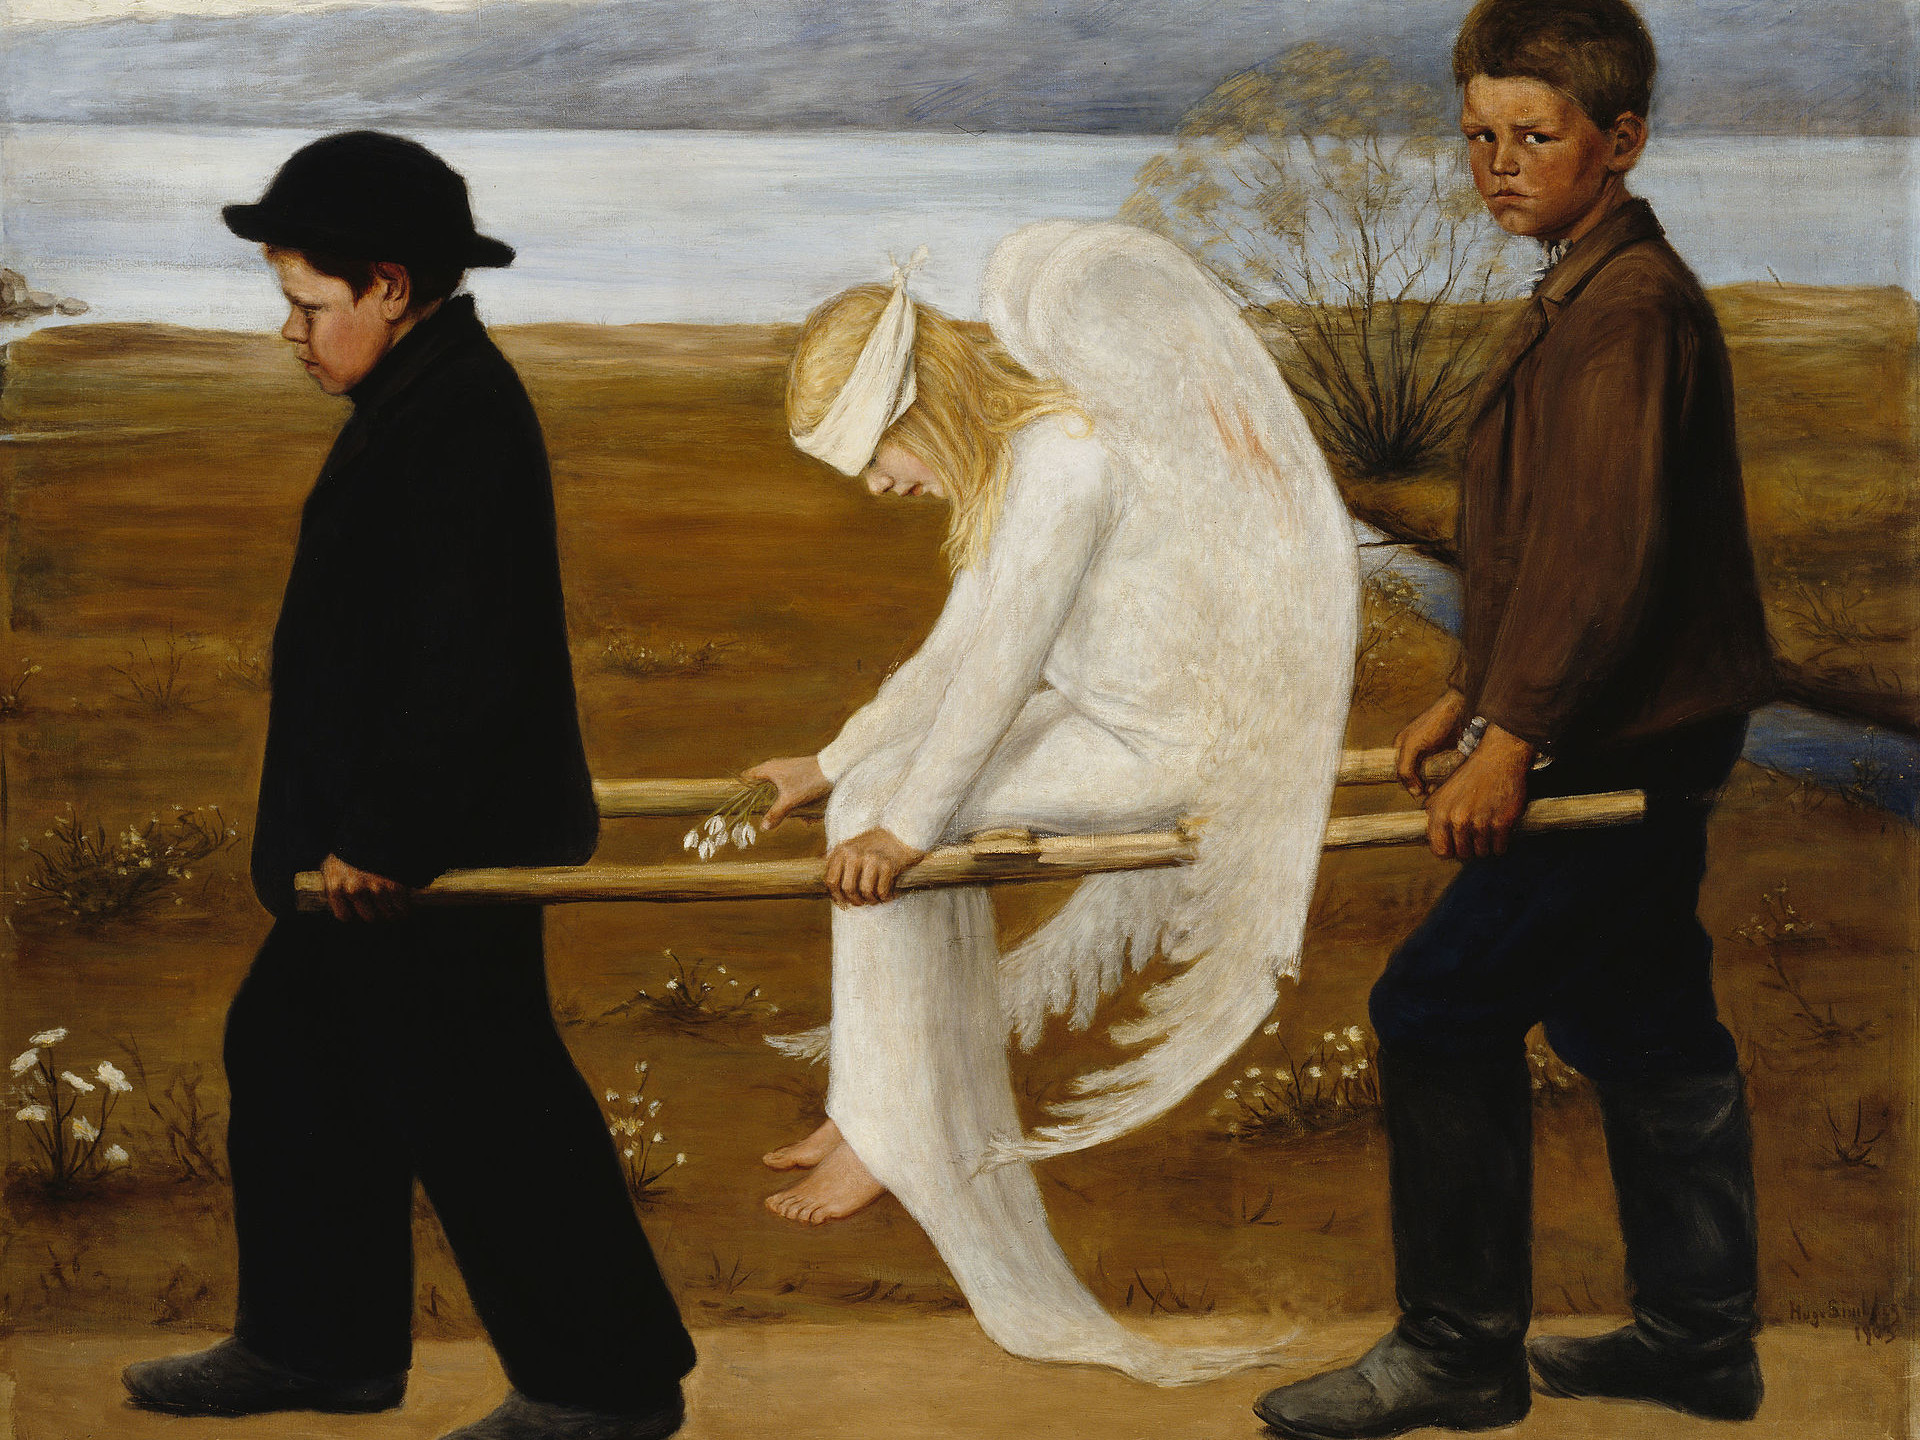 The Wounded Angel by Hugo Simberg (1930)